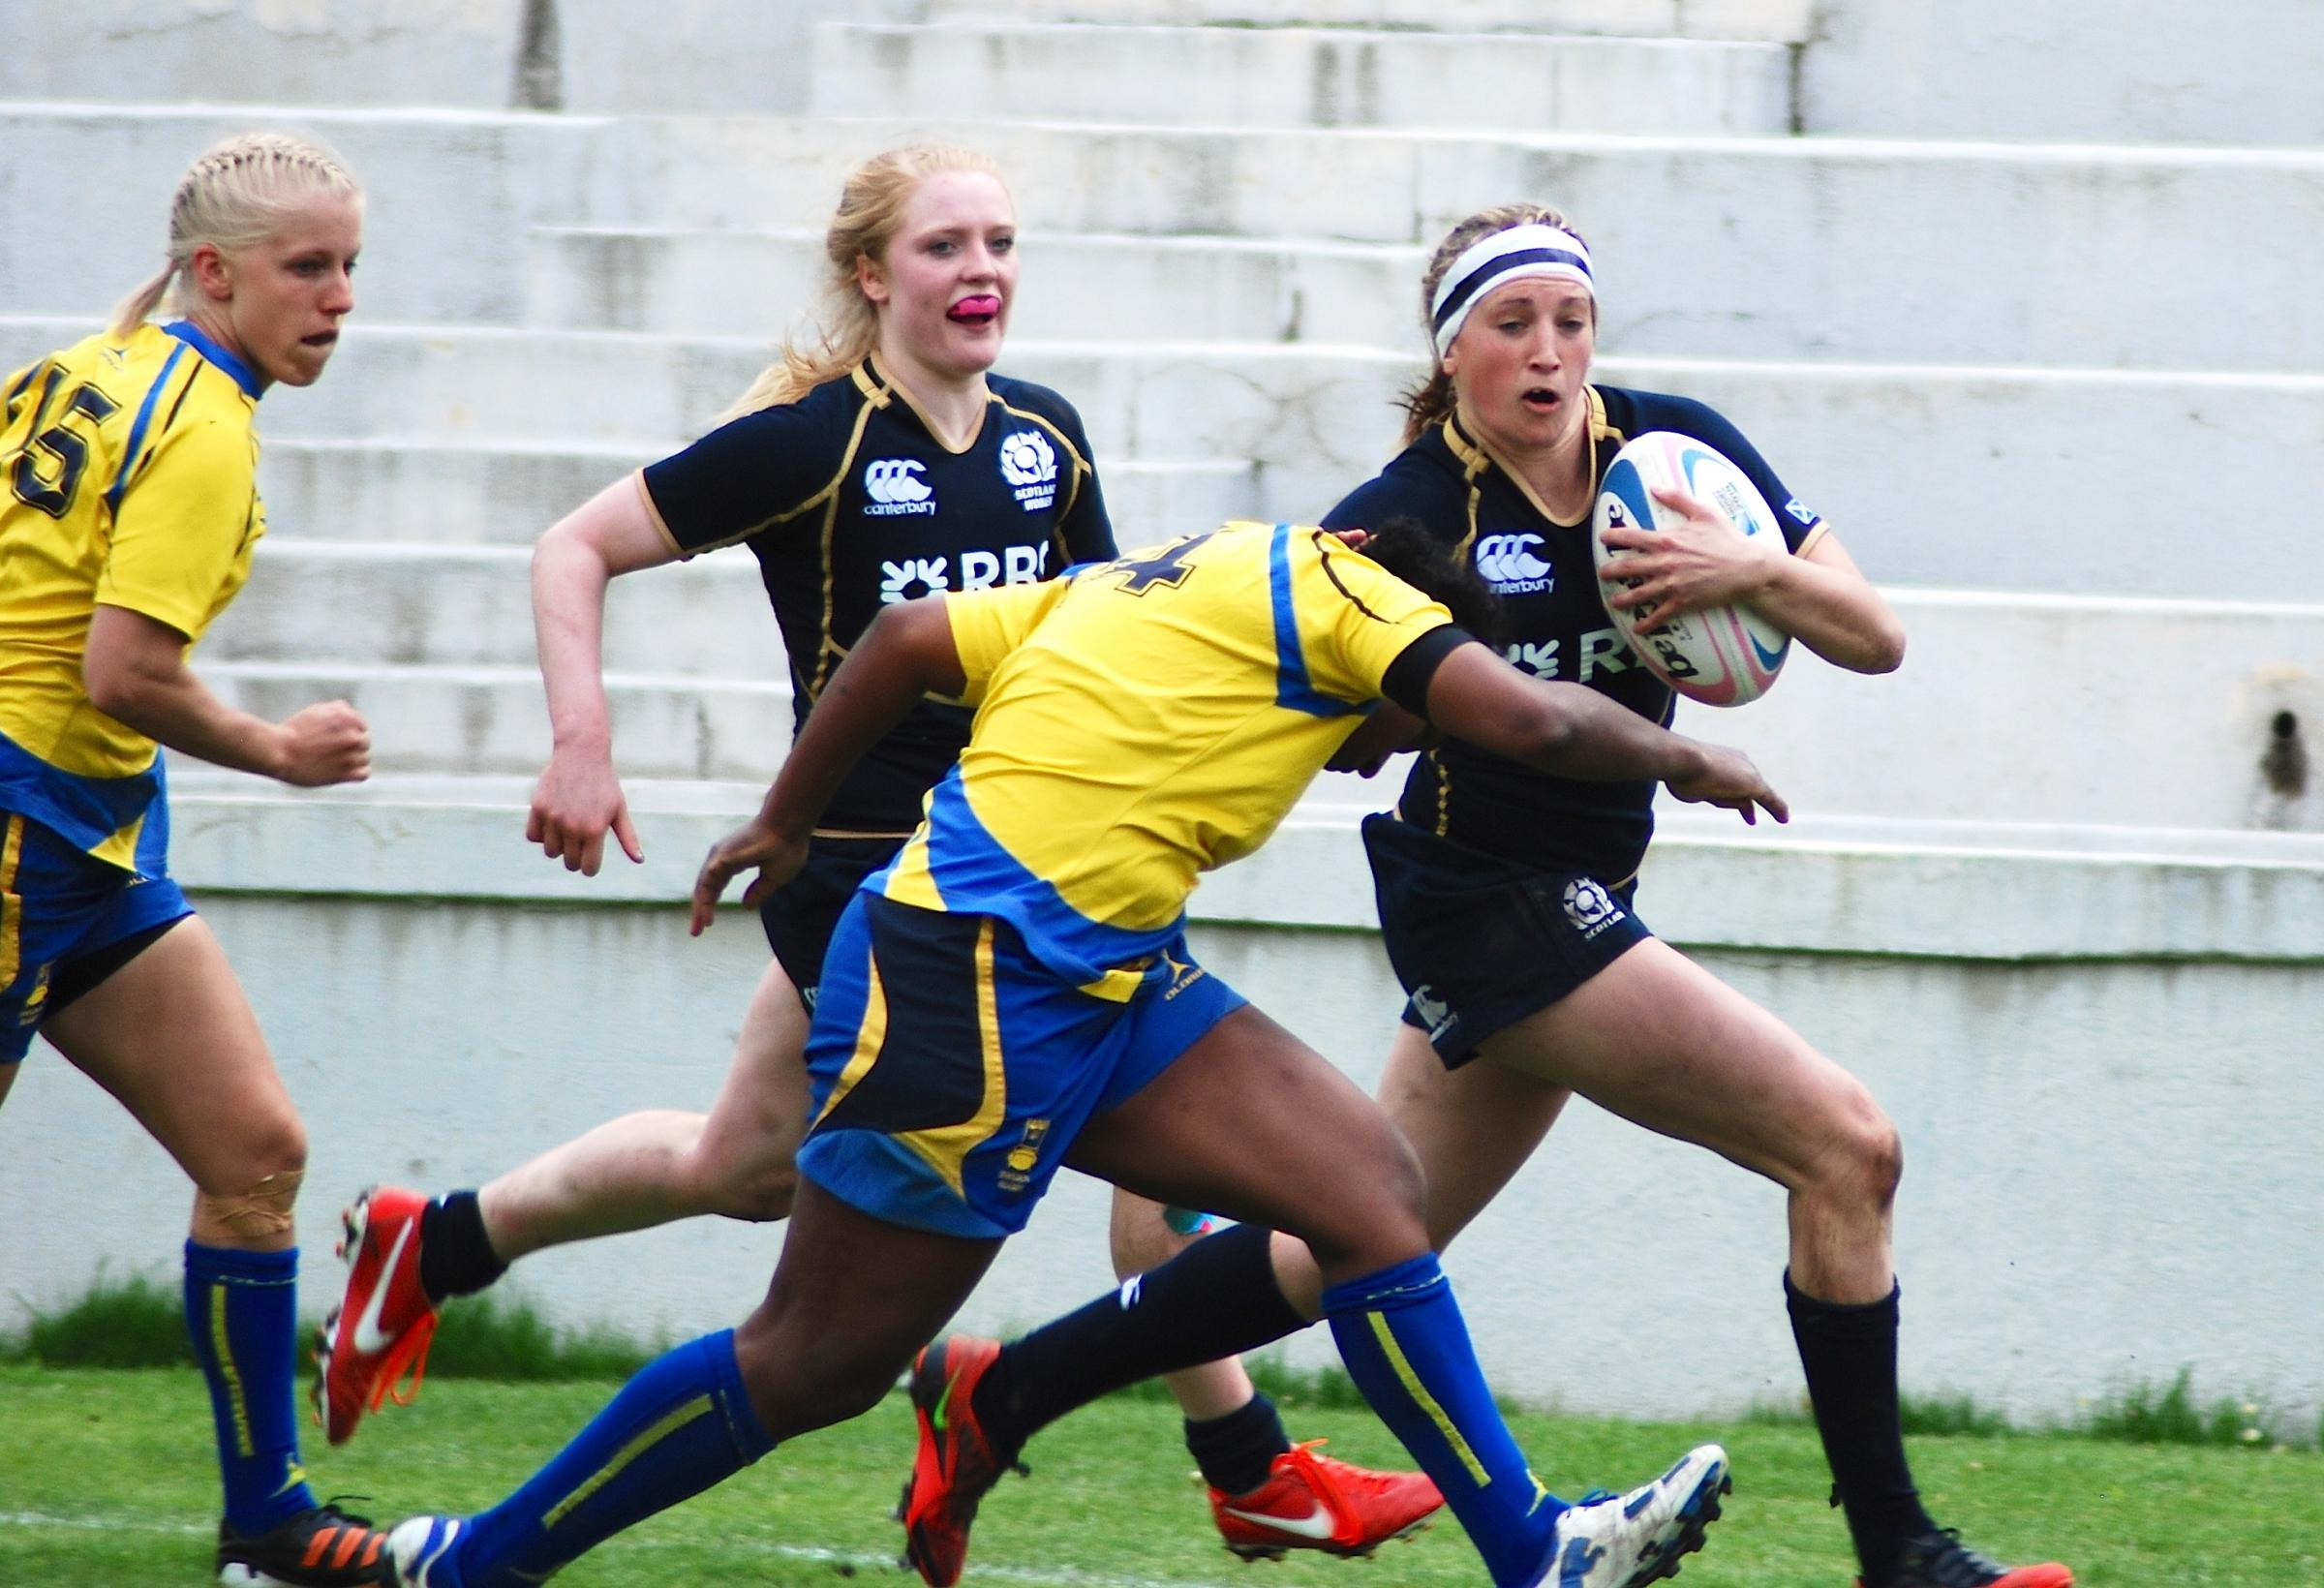 Annabel Sergeant in action for Scotland in 2013. Image courtesy of SRU